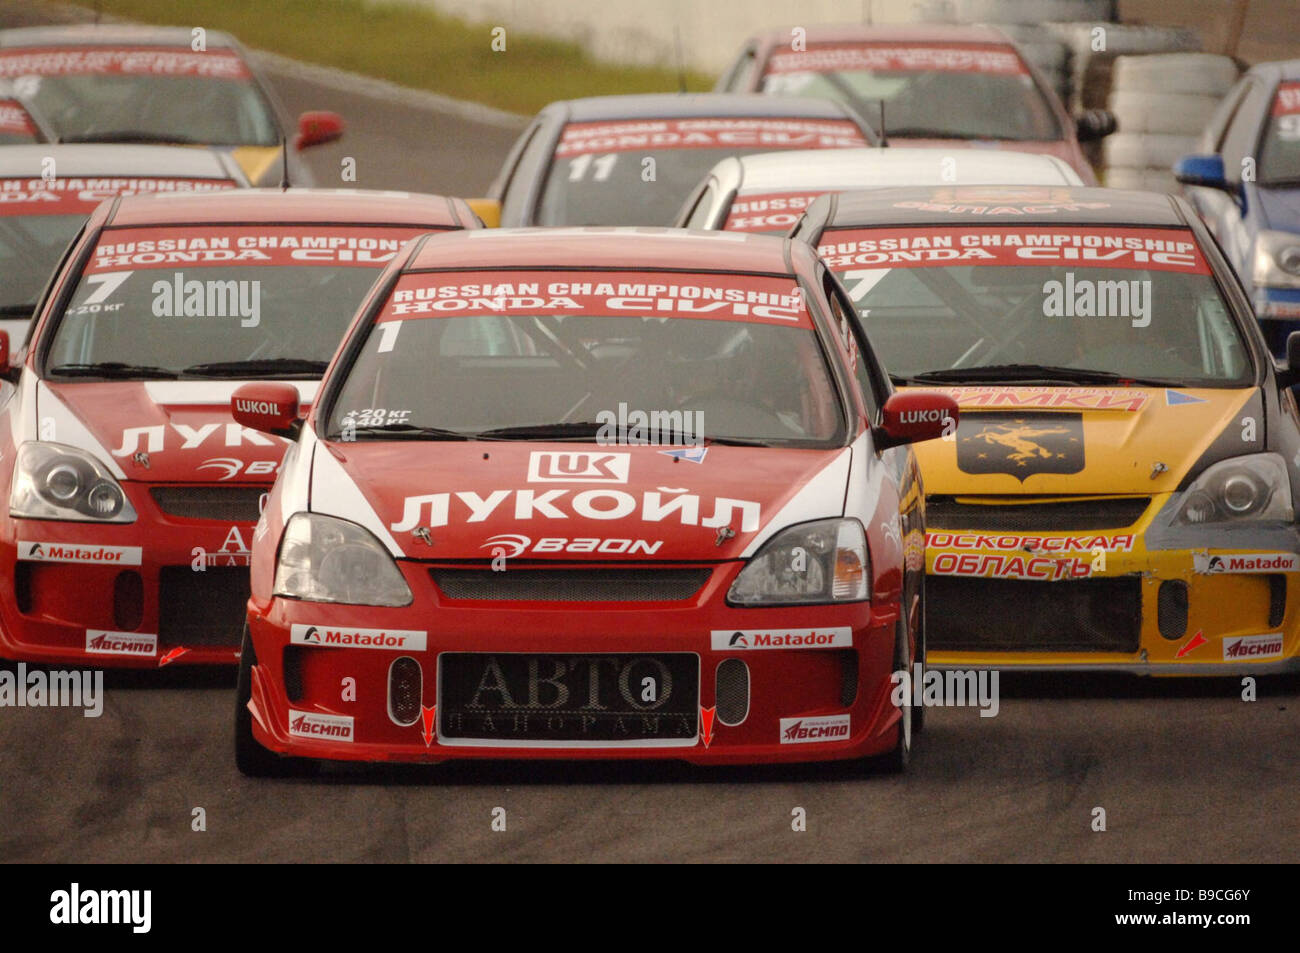 A heat in the Honda Civic qualifying group at the Russian motor circuit racing championships - Stock Image